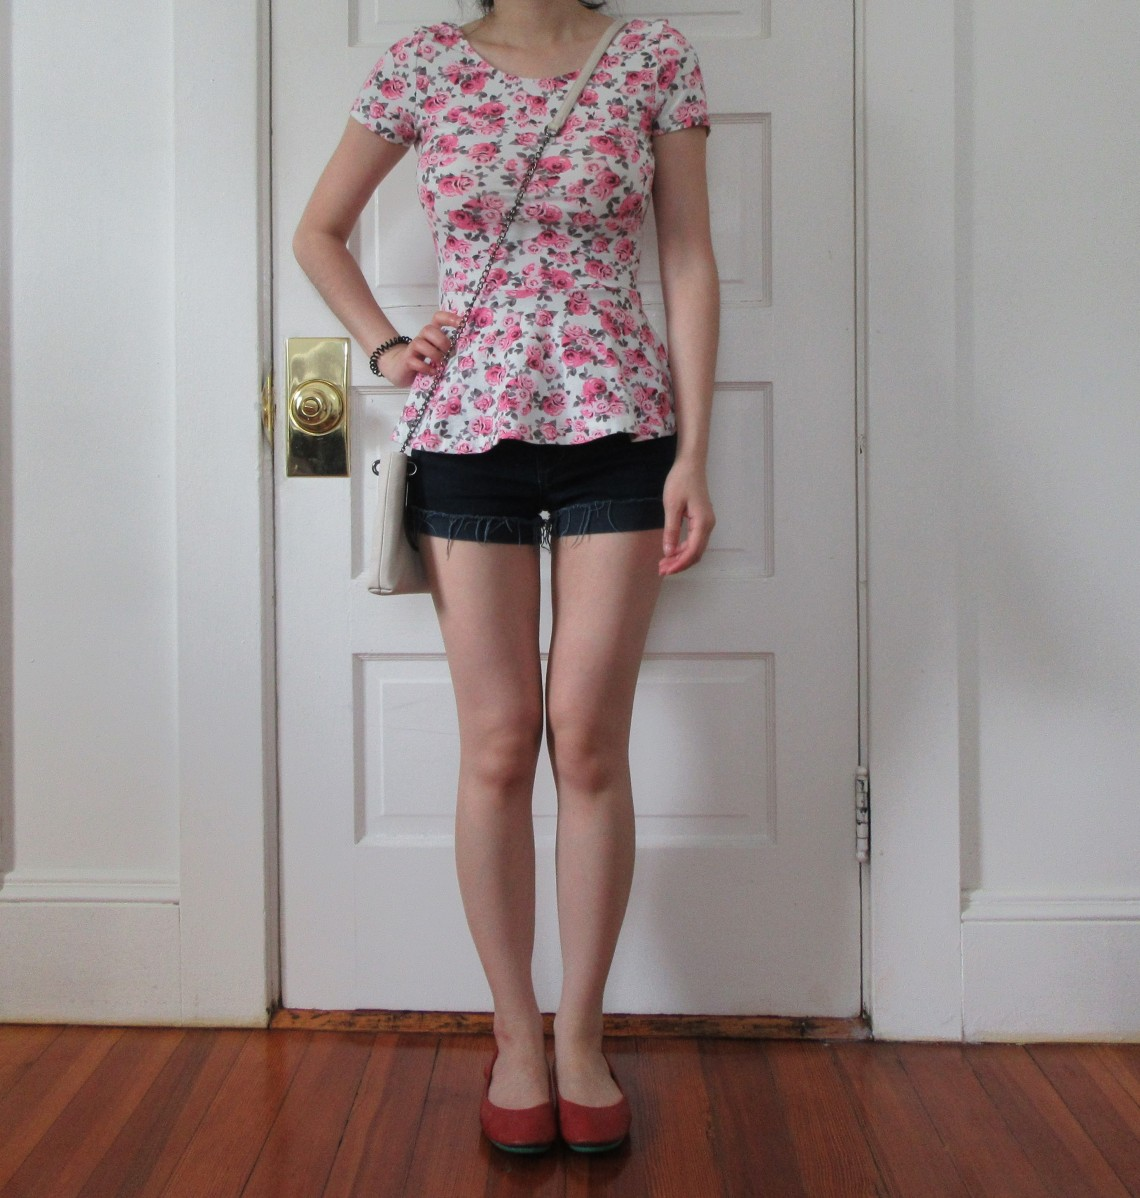 Strawberry Picking Outfit I